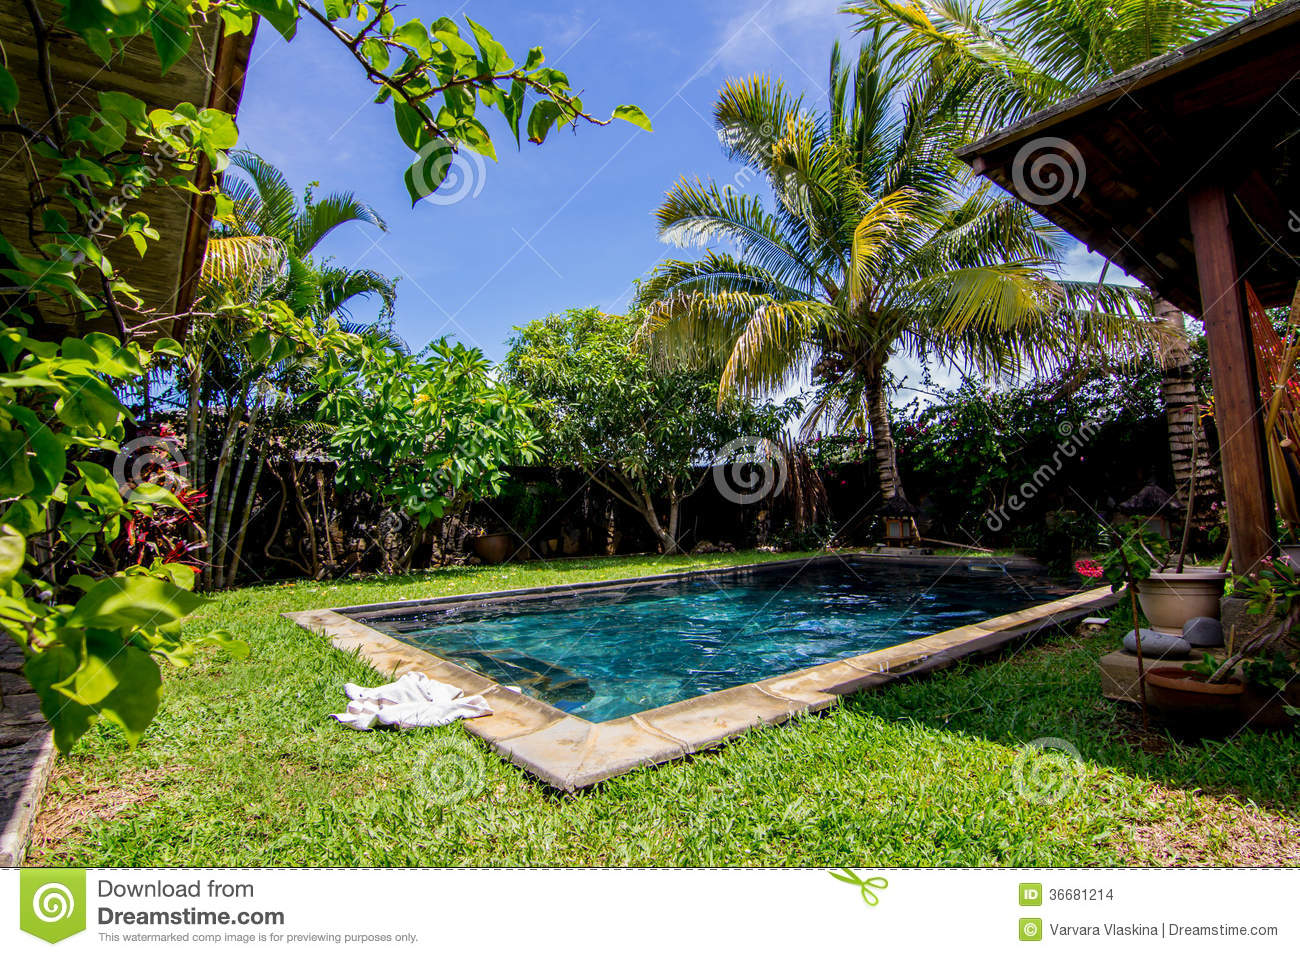 Swimming pool and palm trees in the backyard stock images image 36681214 for Best palm tree for swimming pool